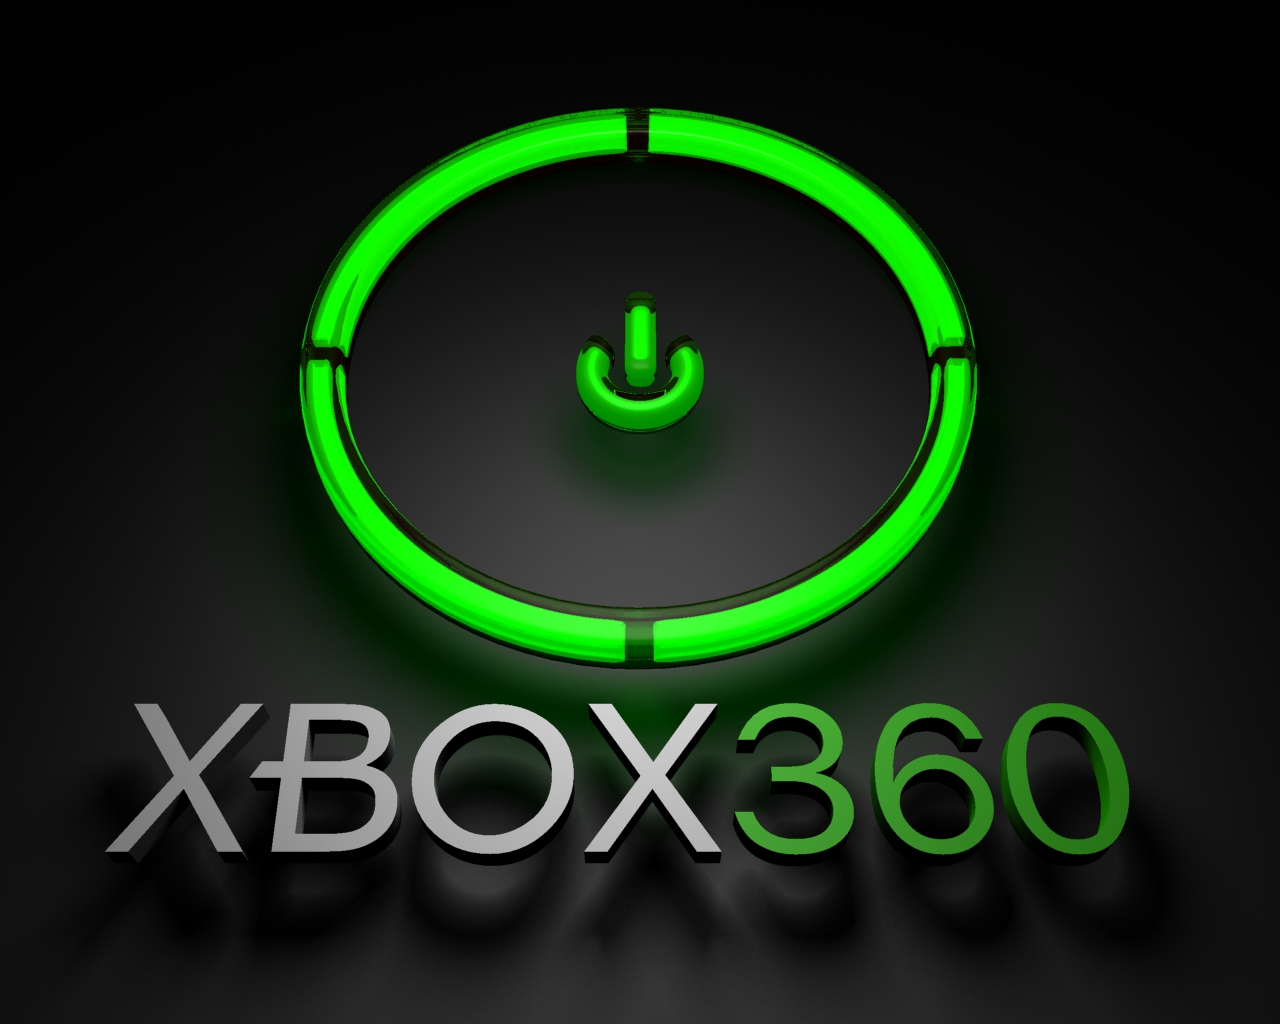 http://1.bp.blogspot.com/-o-lKR7vlGsg/UAzjiaLh3WI/AAAAAAAAB8k/C9mvmB2Zdak/s1600/xbox+360+green+ring+power+title+wallpaper+background+desktop+logo+trademark+brand+microsoft.jpg